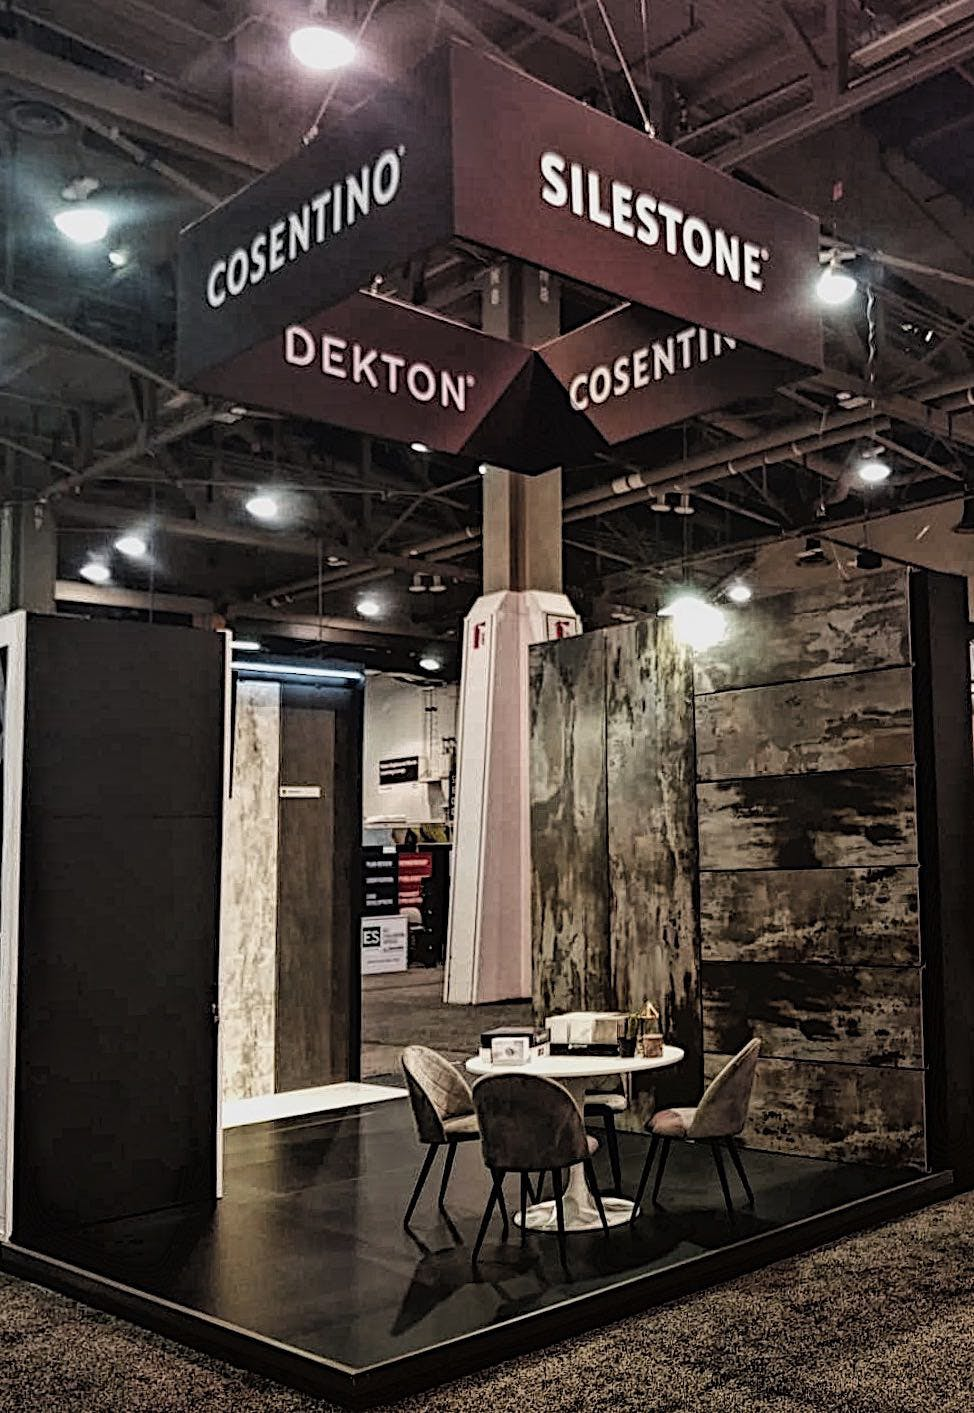 Image of 3AEAD2ED A5AA 4352 843E 7CB8B3757305 1 in Cosentino present at the American Institute of Architects National Convention - Cosentino